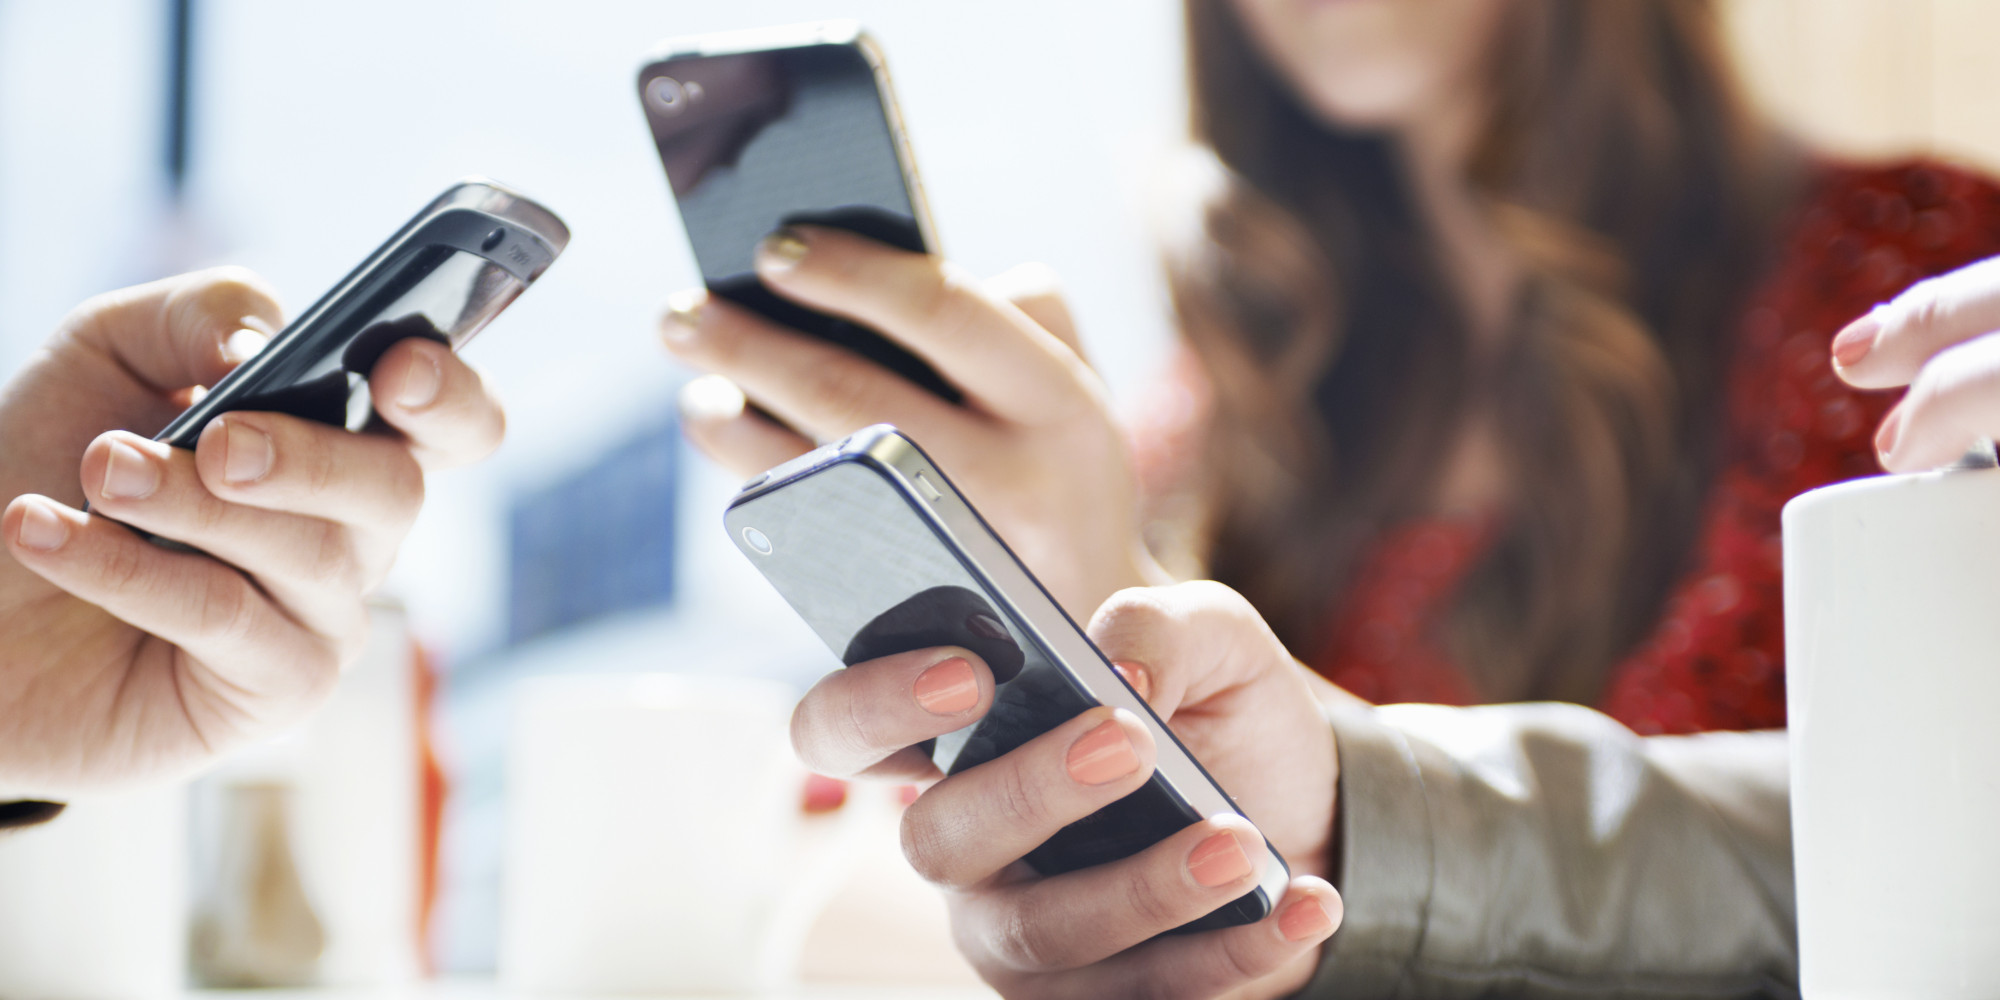 mobile phone trends at social spots